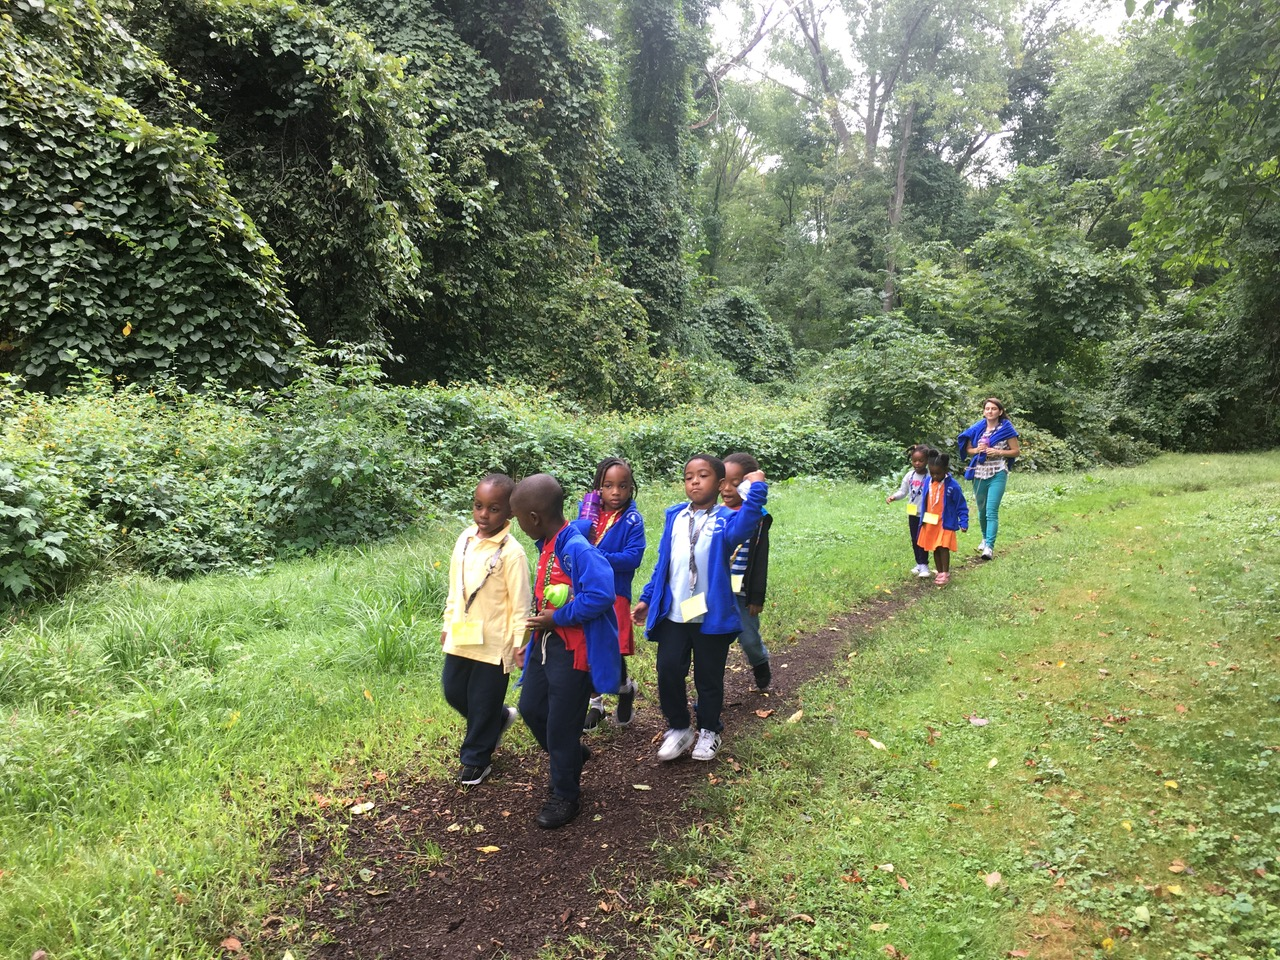 The students explored nature around a nearby pathway in the woodlands of Milton. Traveling through, they were excited to see living organisms that inhabit the area, including a deer who scampered across their path. They also examined and explored the plant life native to the area.